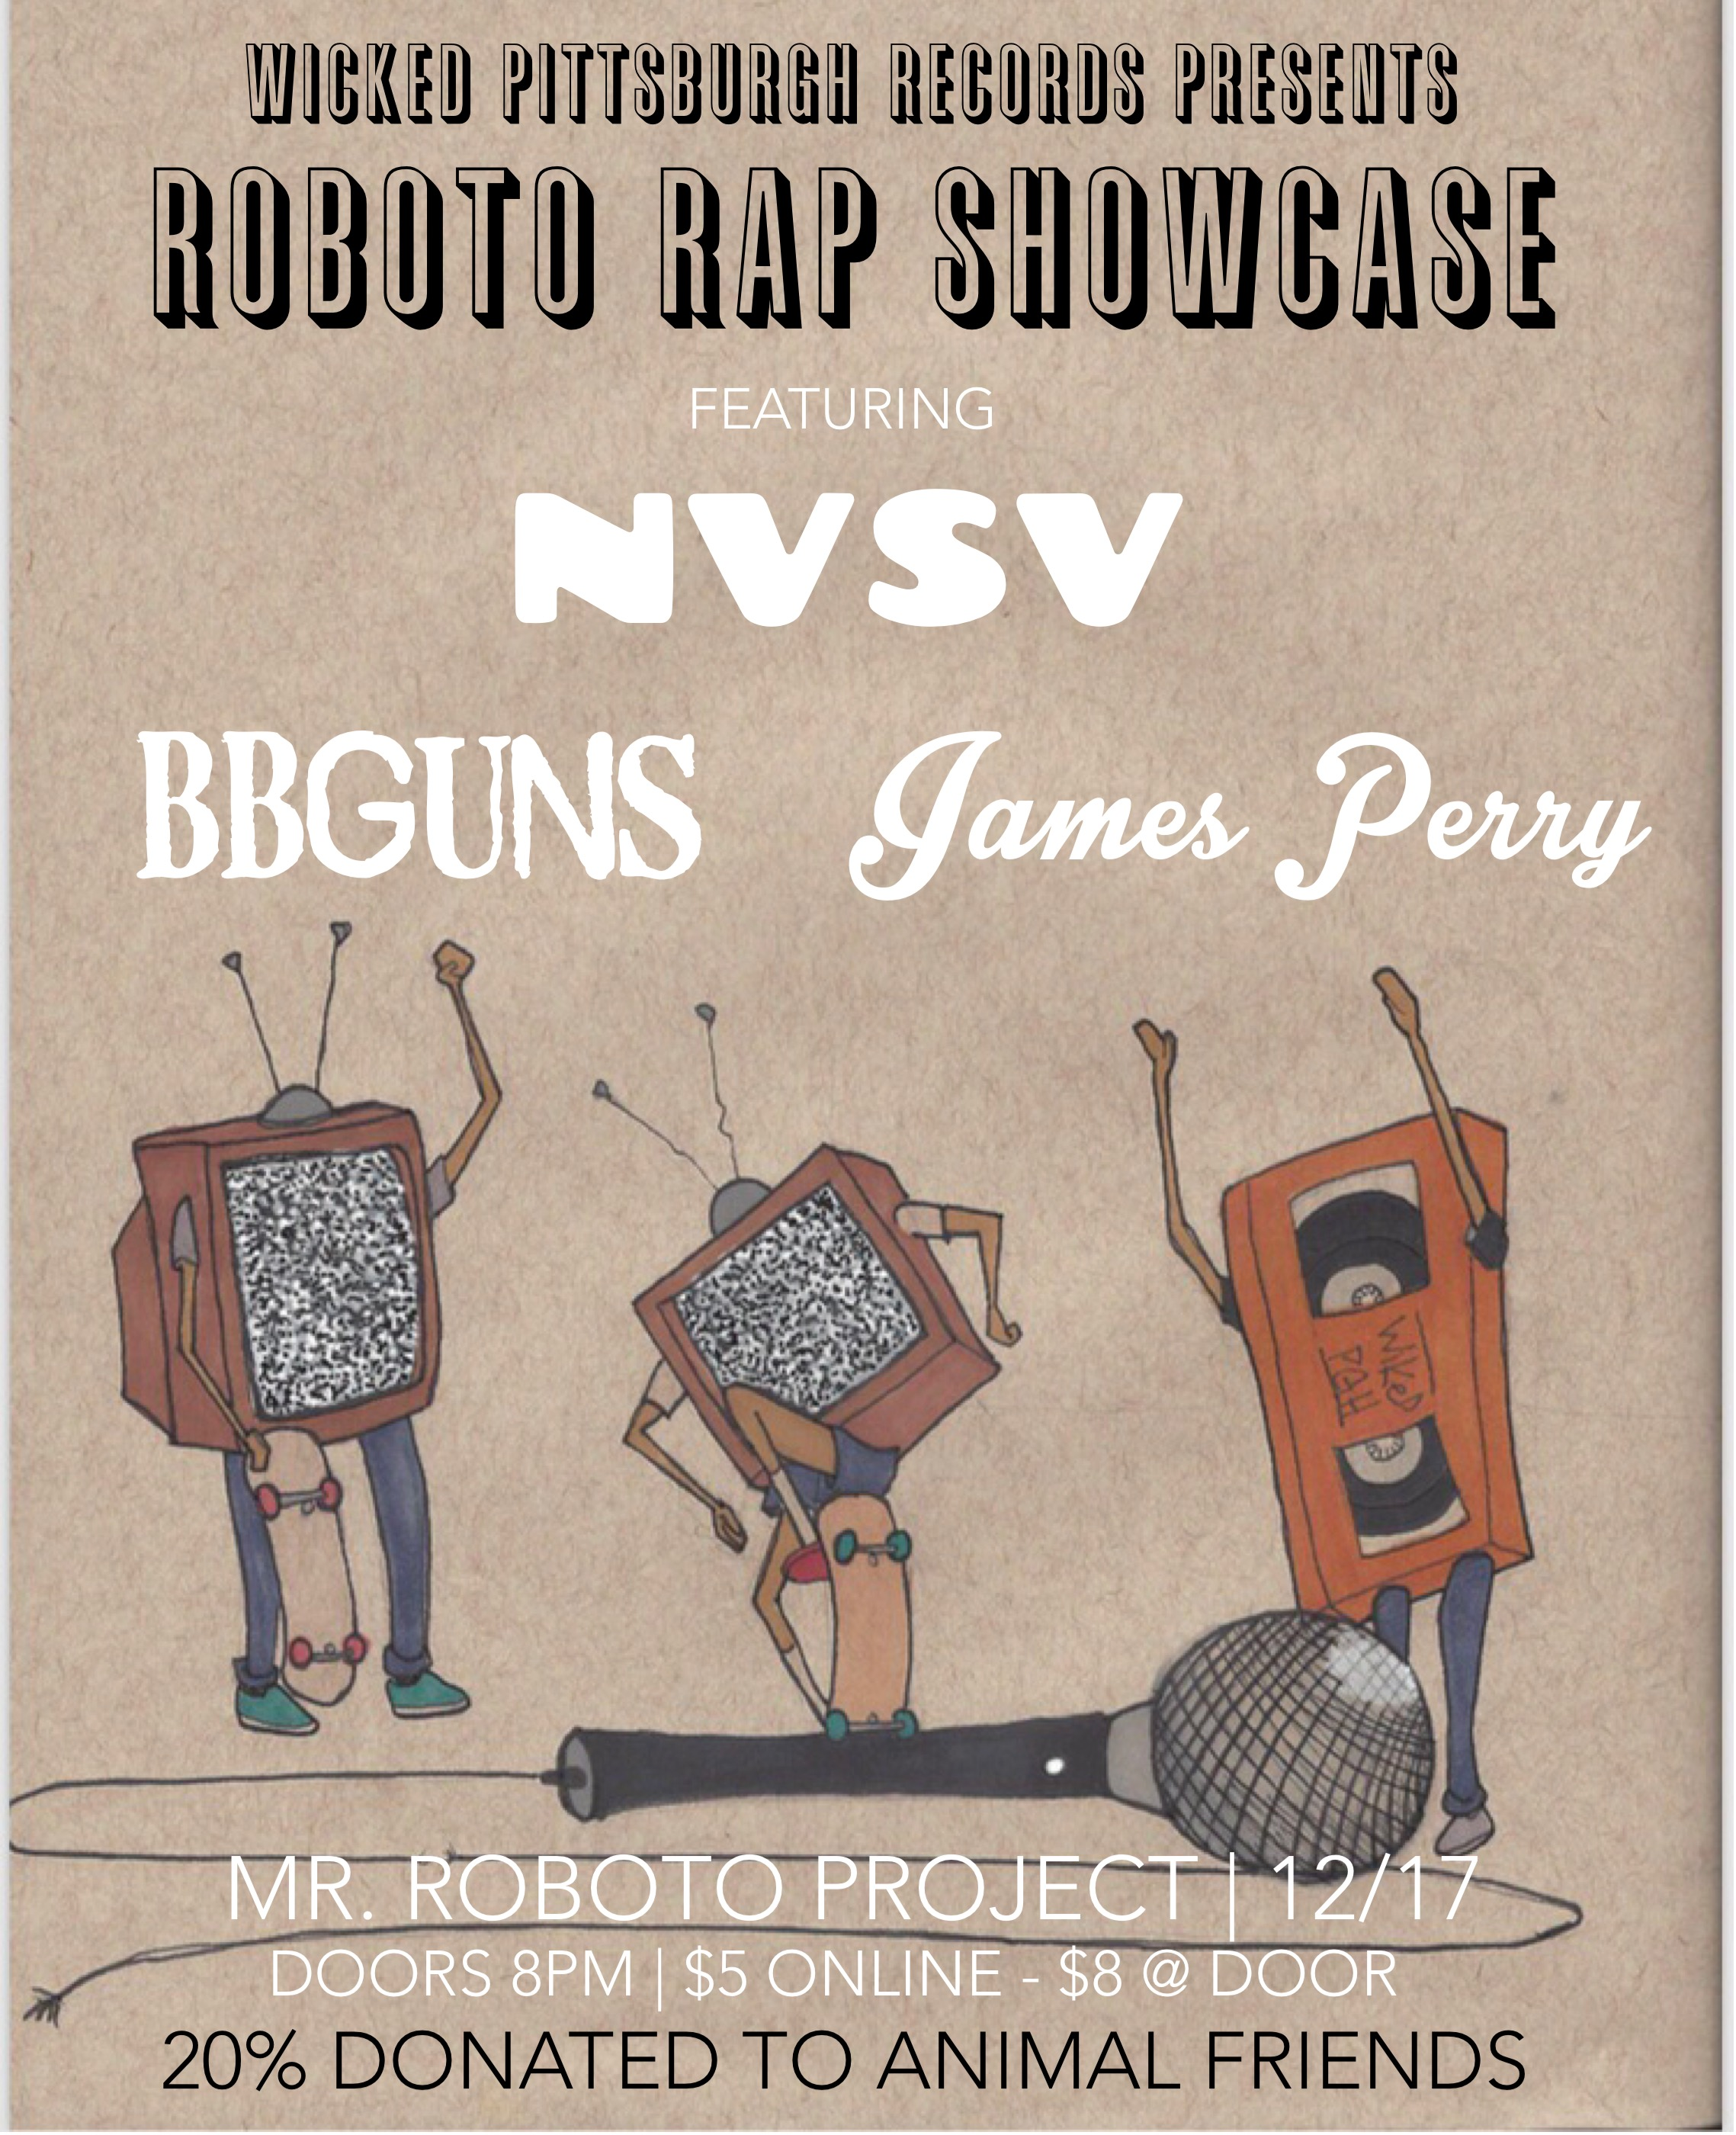 Roboto Rap Showcase Flyer - Wicked Pittsburgh Art Collective - Art by: Clayton - Text/Design by: Mike Schwarz